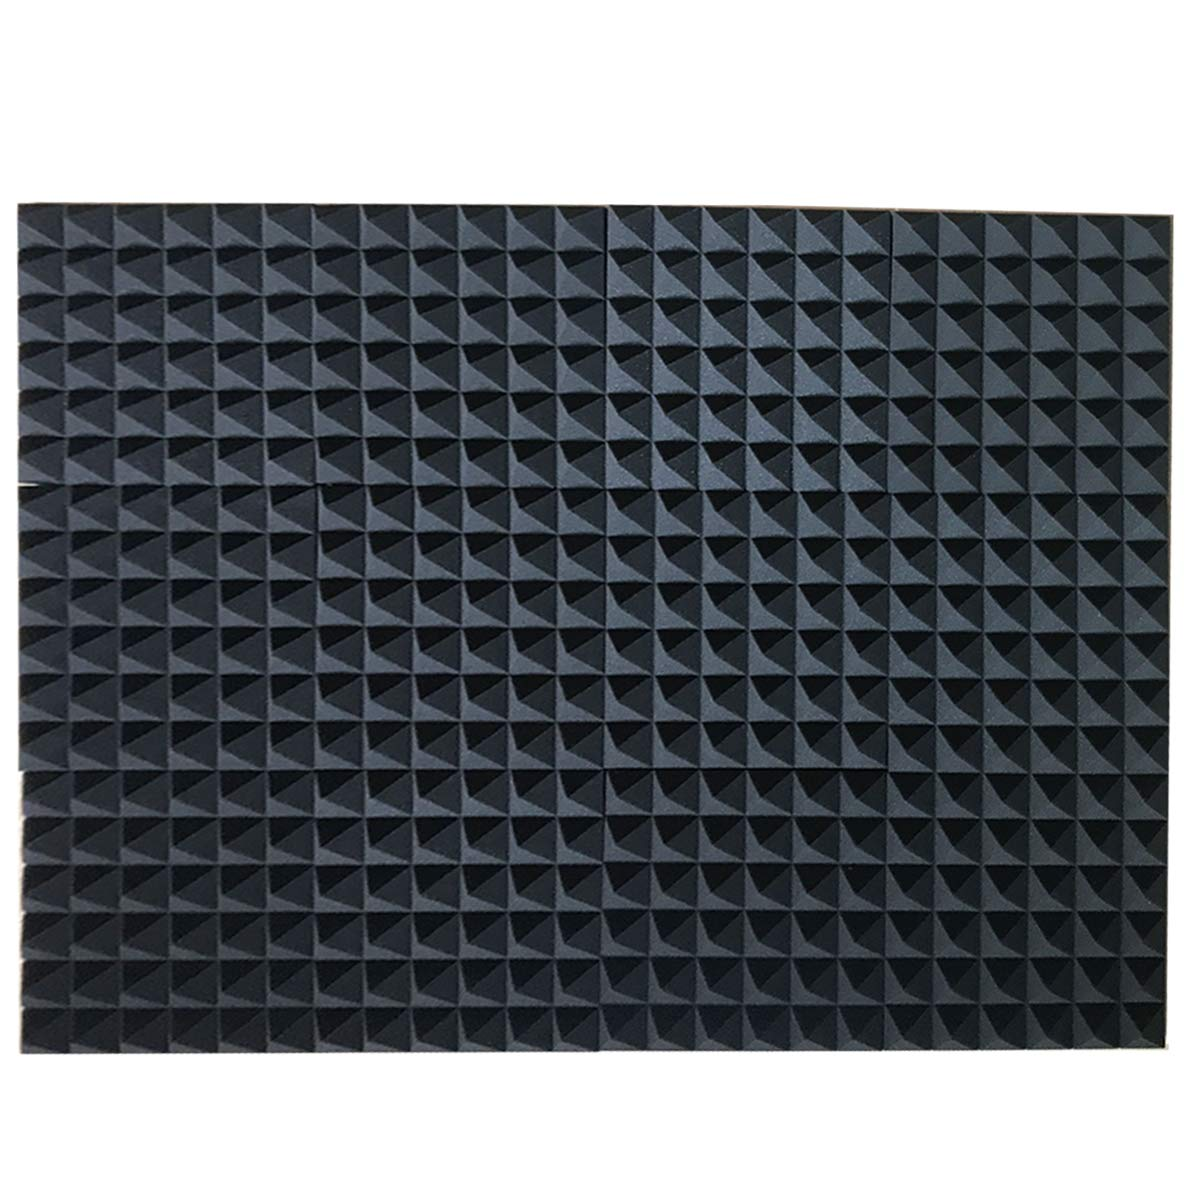 12 Pack Set Acoustic Foam Panels, Studio Wedge Tiles, Acoustic Foam Sound Absorption Pyramid Studio Treatment Wall Panels 2